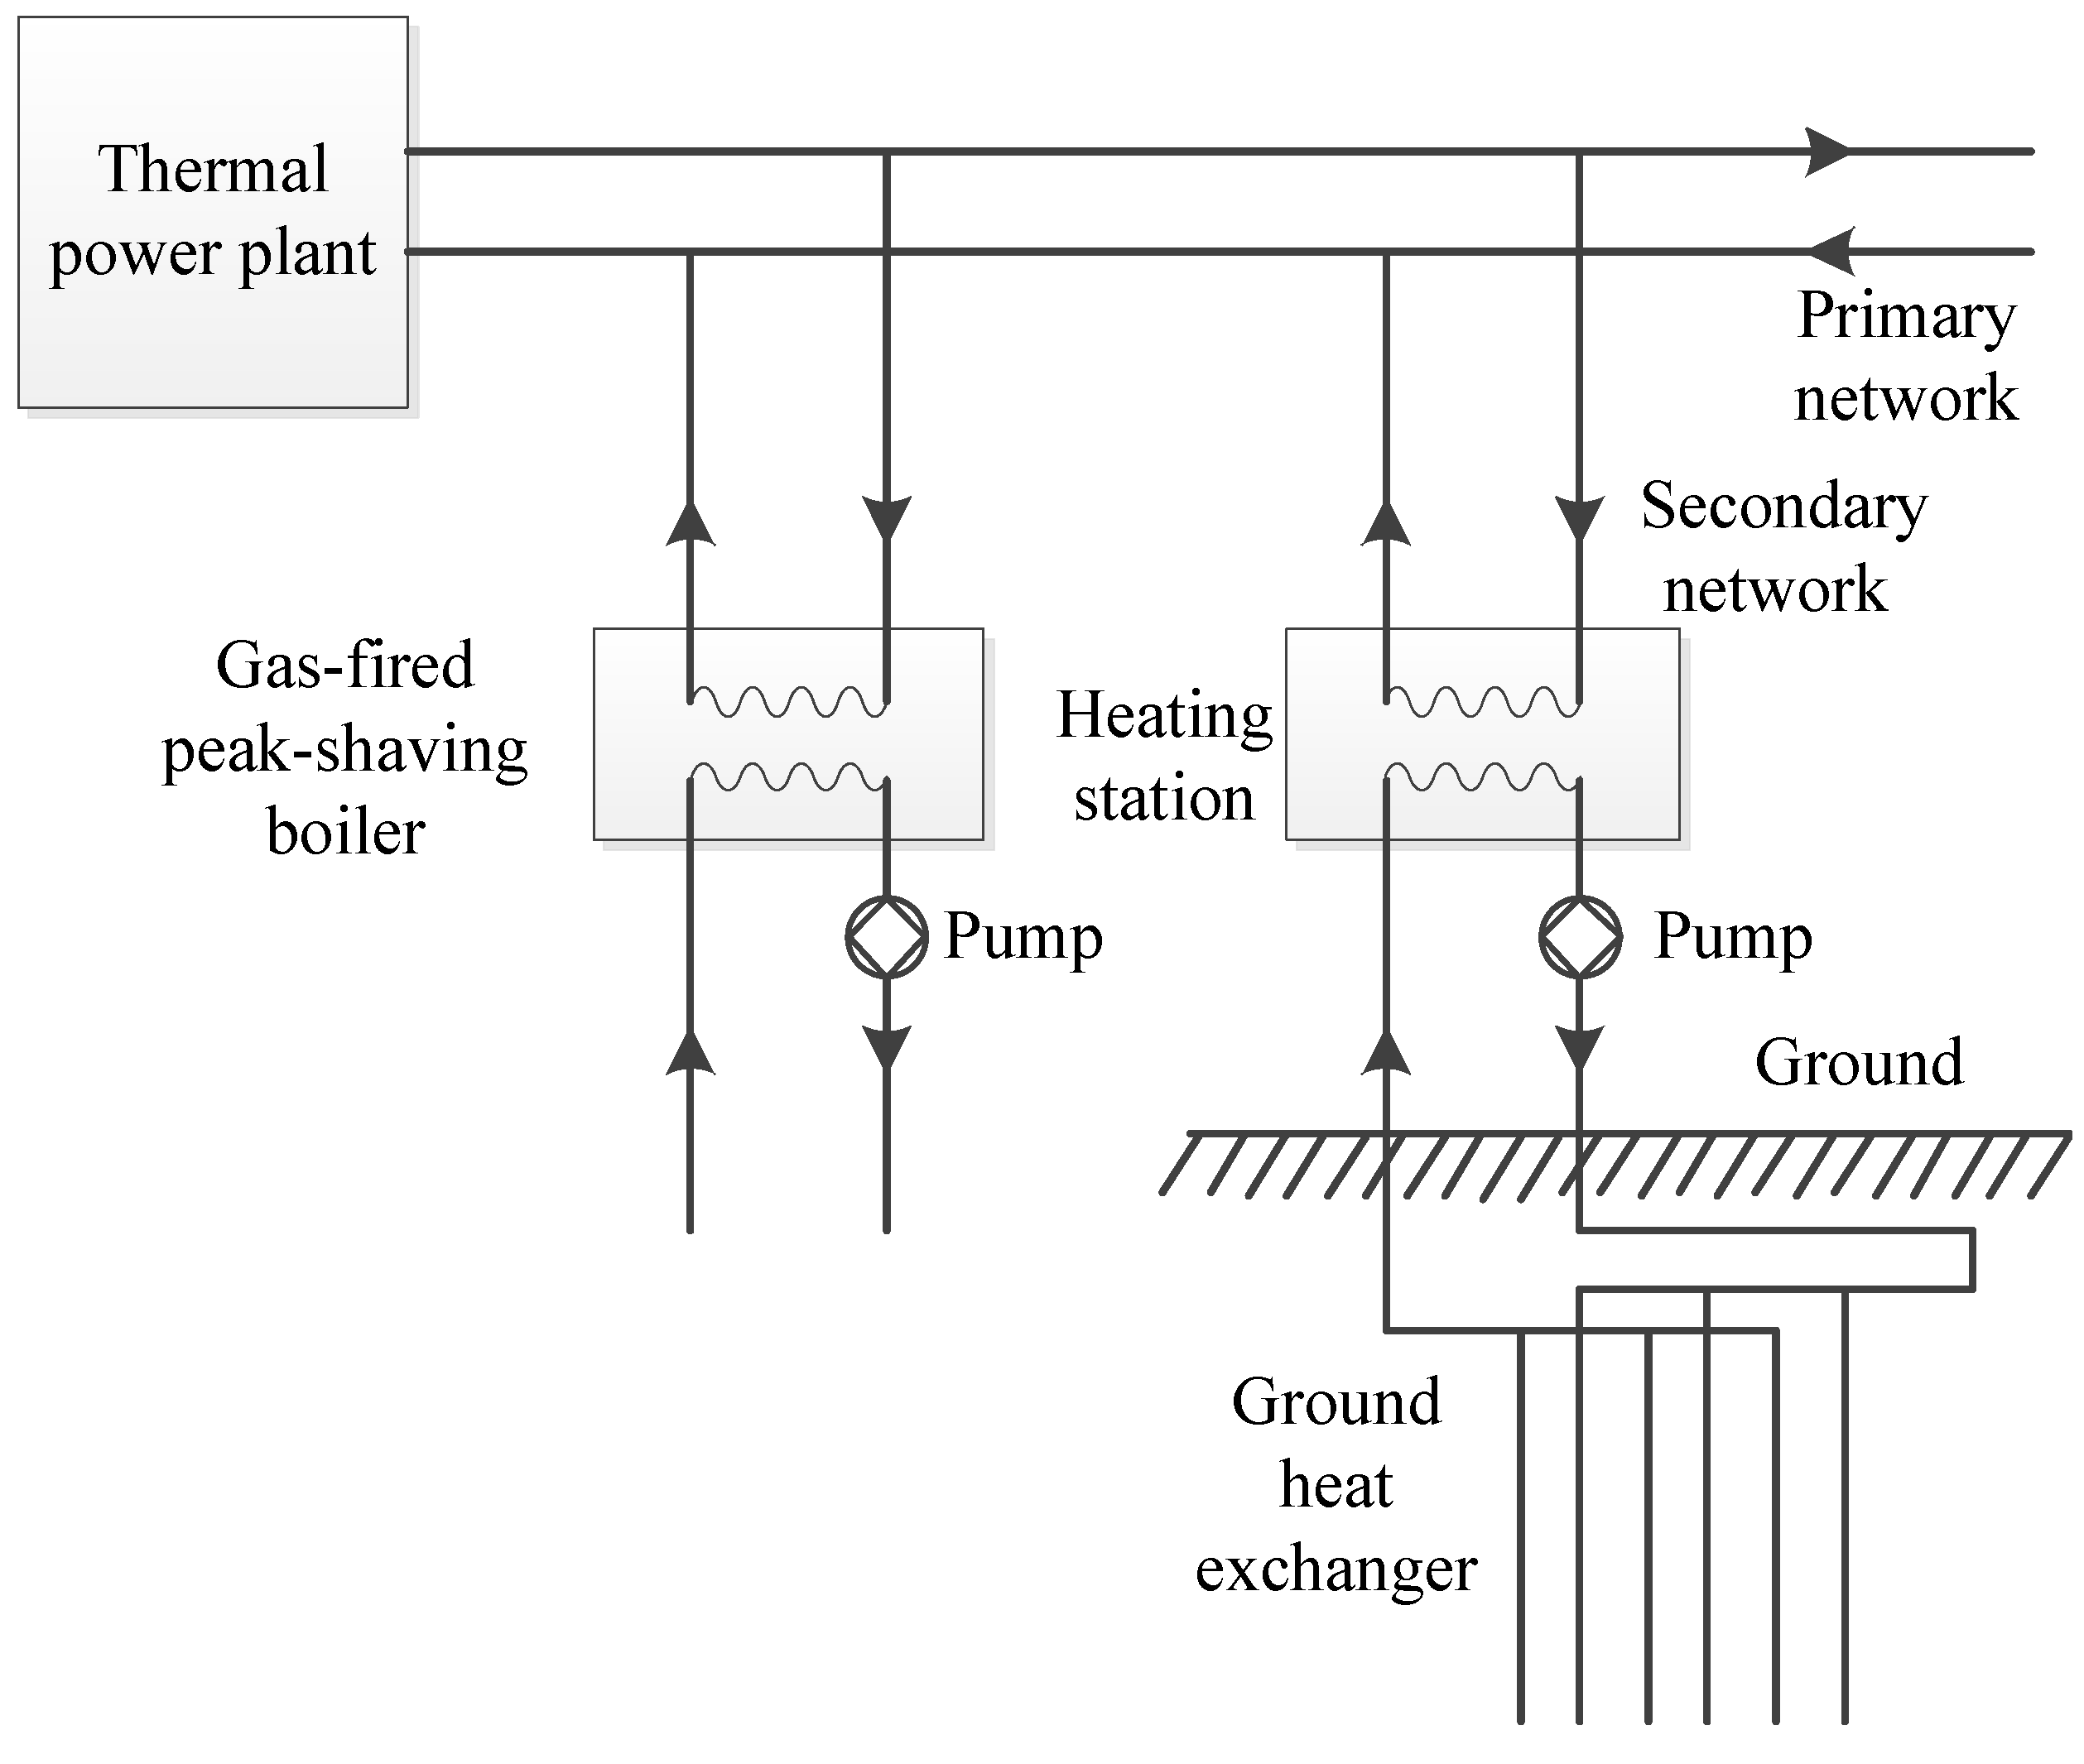 Energies Free Full Text Environmental And Economic Benefit Power Plant Boiler Schematic 10 02090 G002